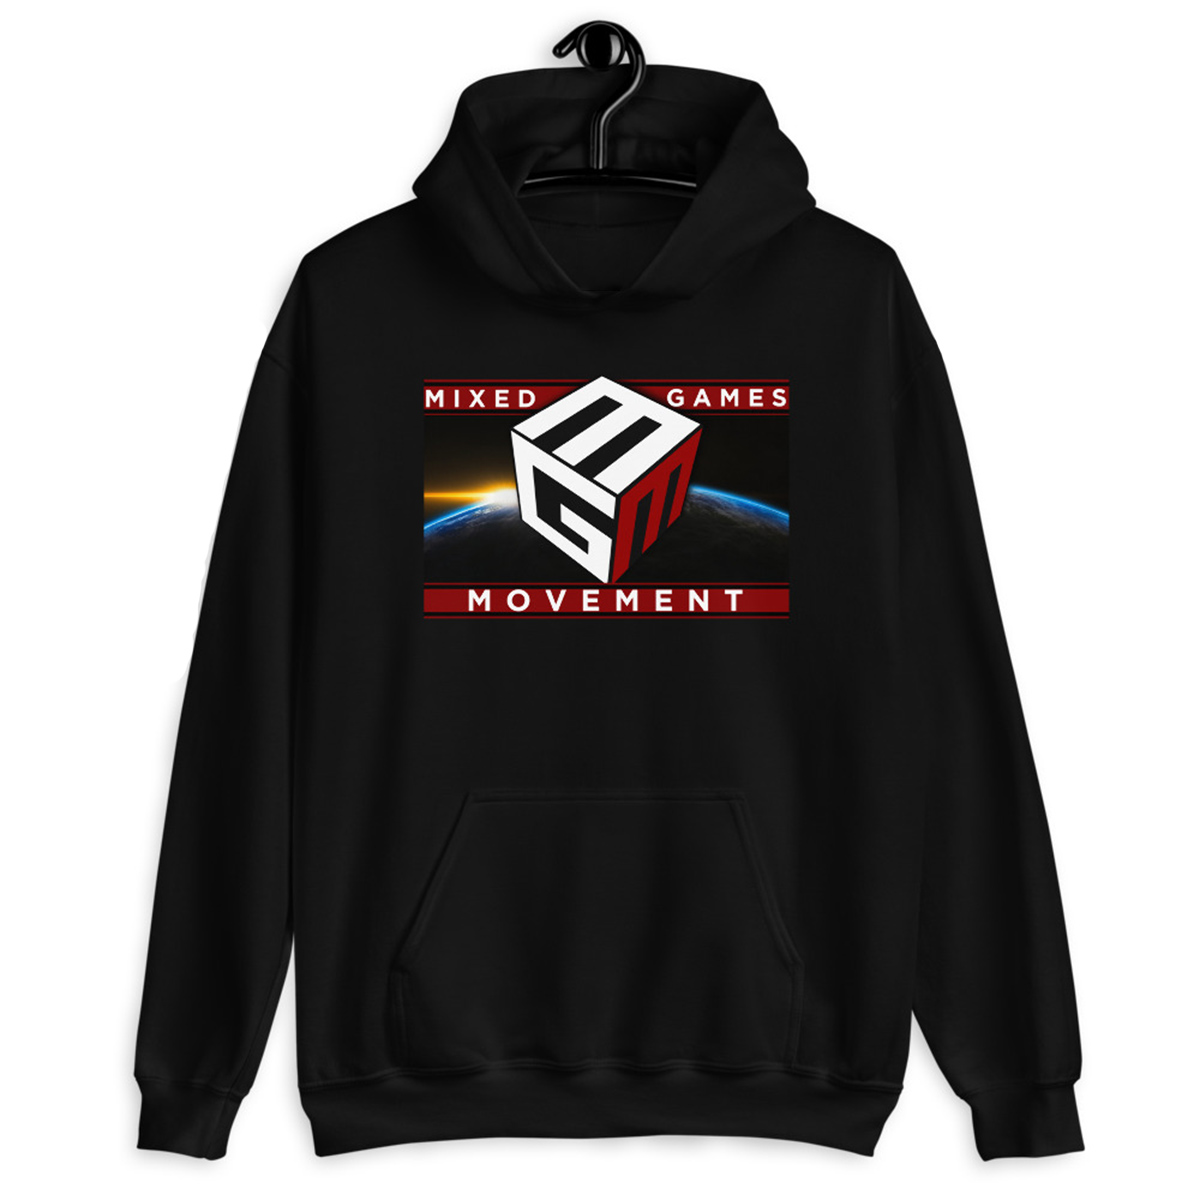 Mixed Games Movement Poker Hoodie - Black